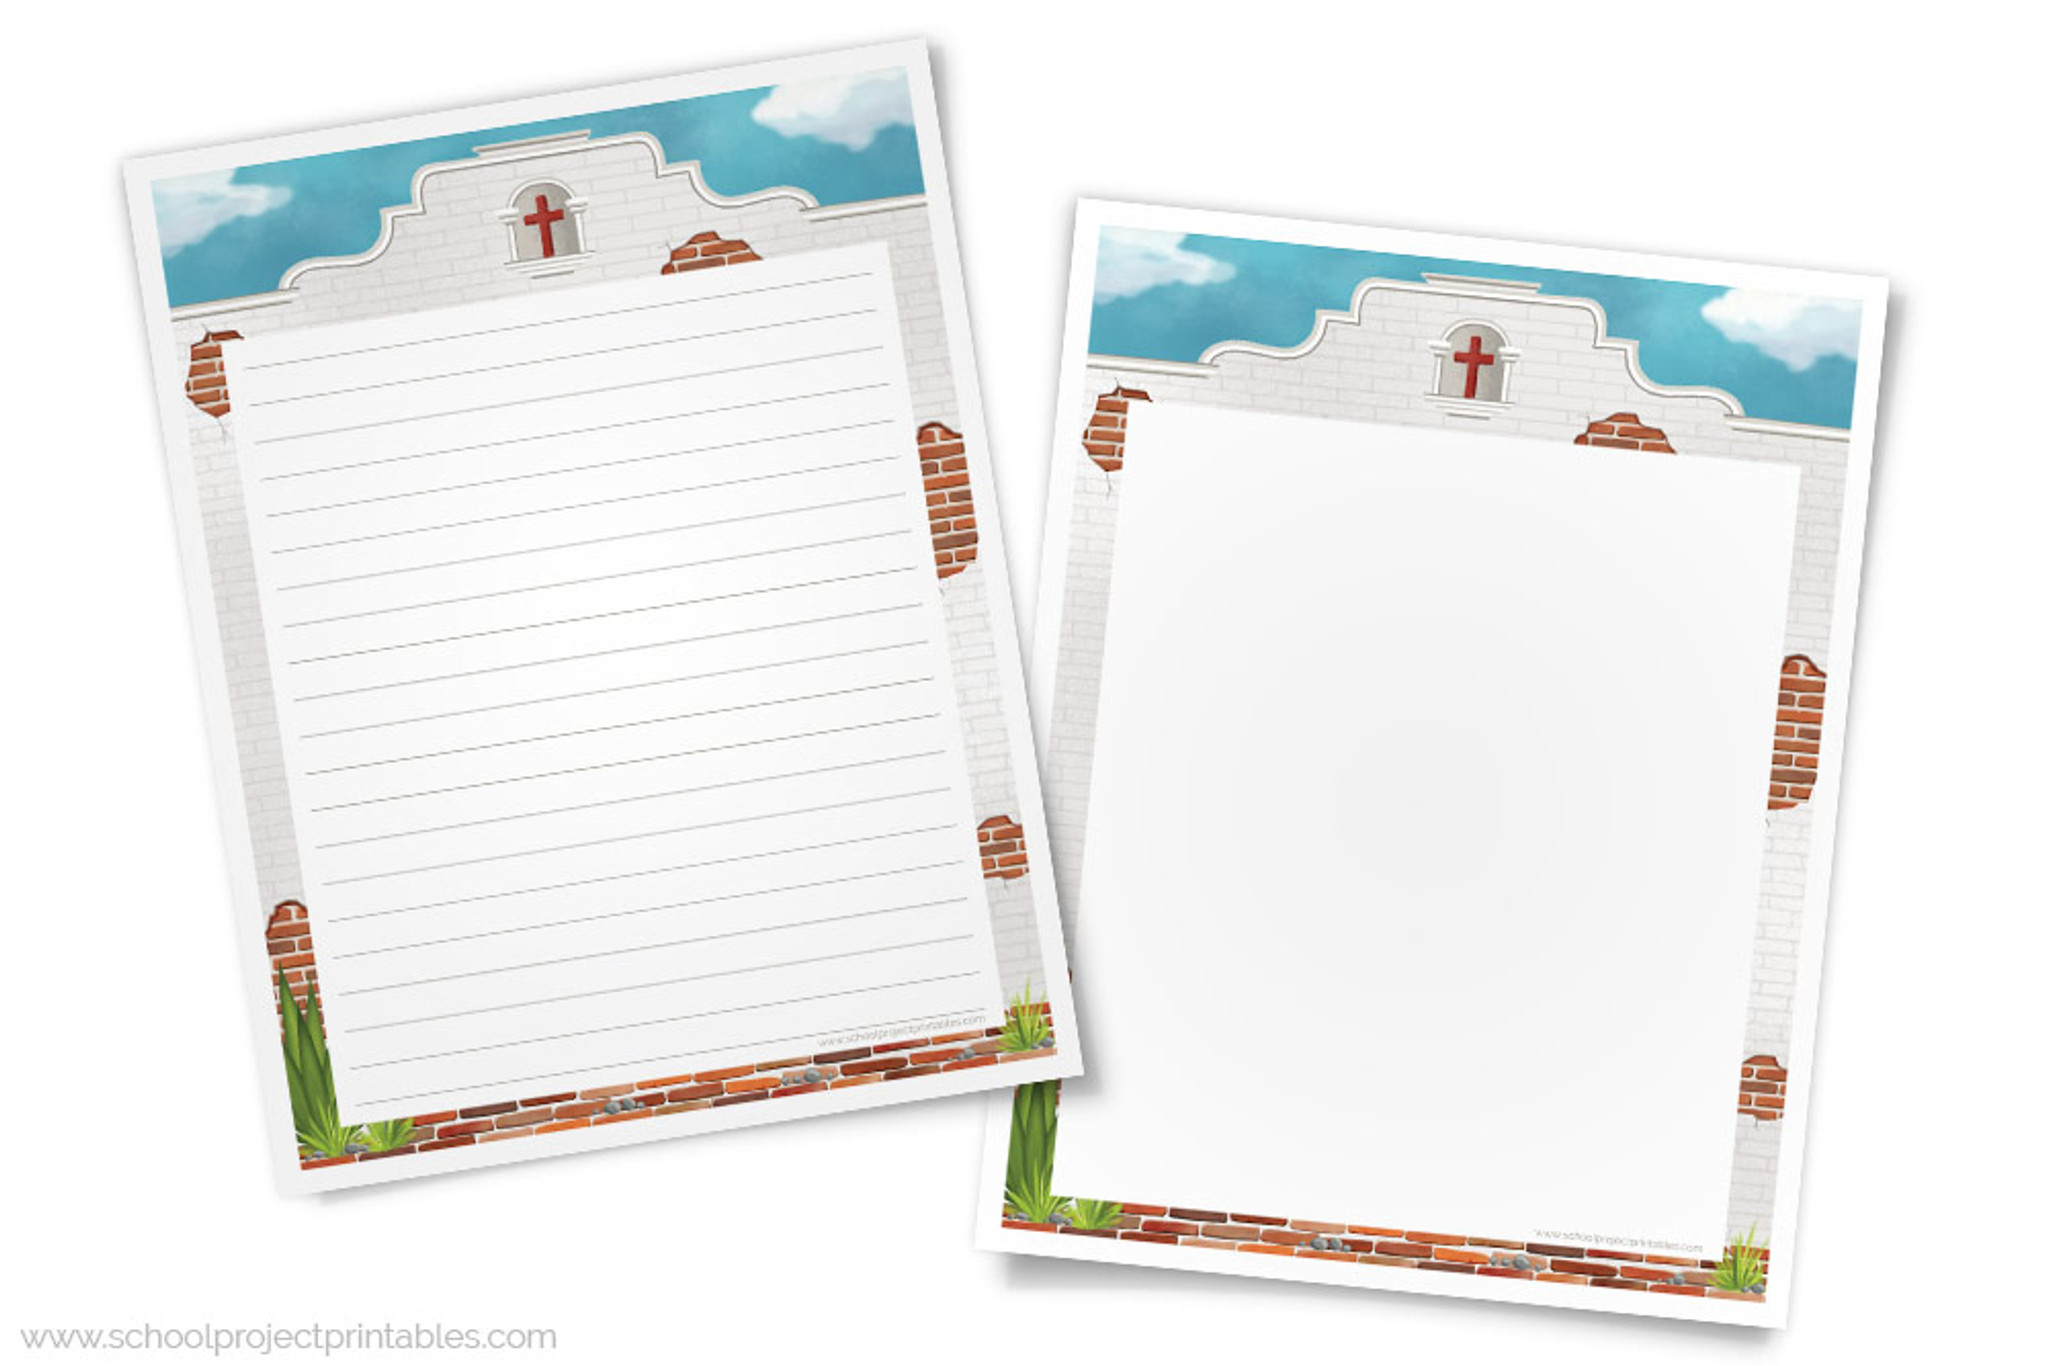 California missions writing template border paper school project downloadable files included lined and blank unlined california missions writing templates the artwork features the maxwellsz